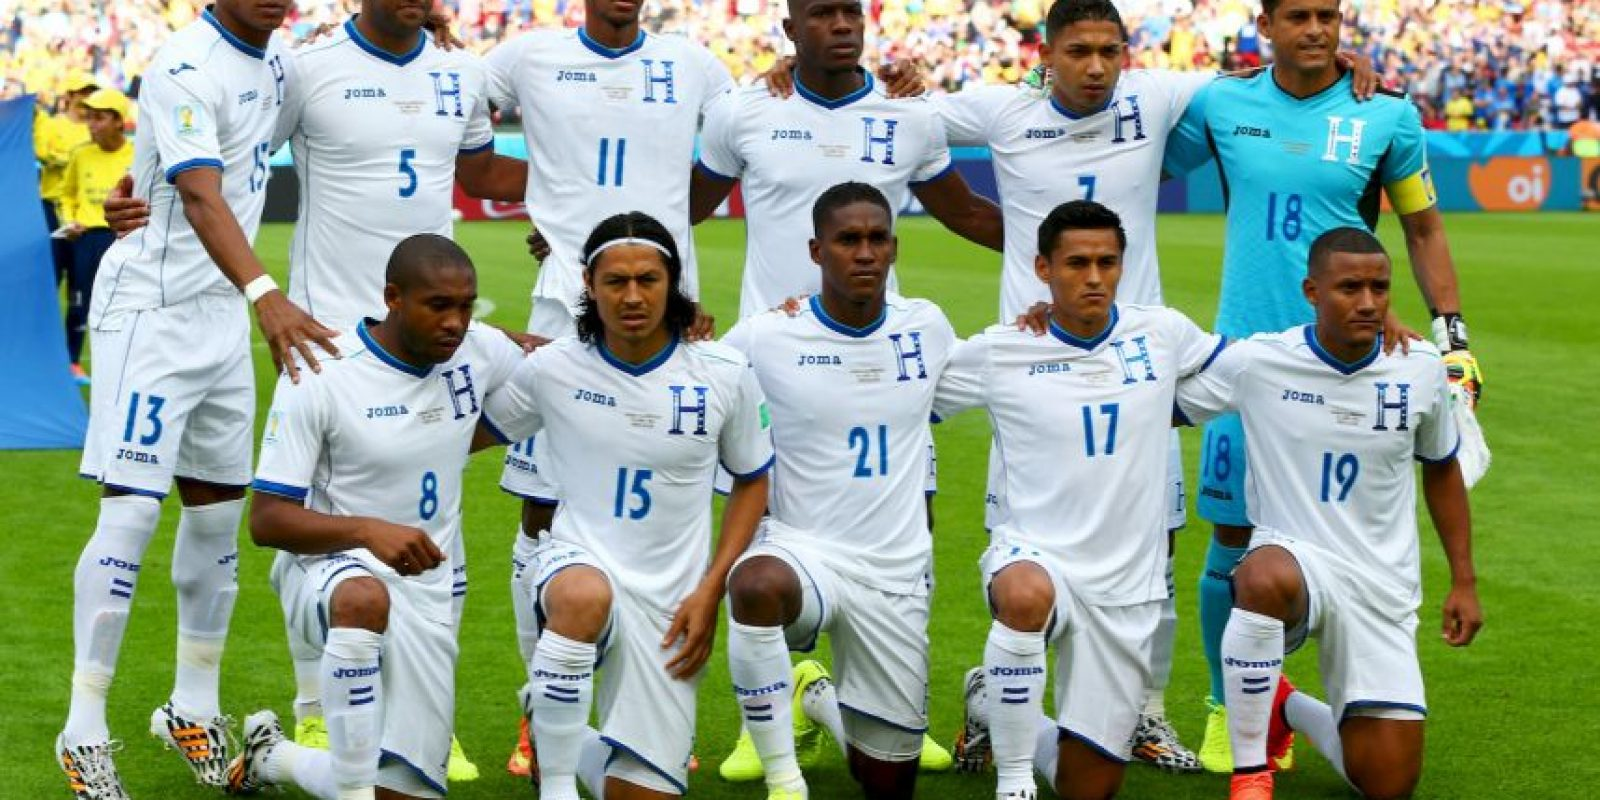 7. Honduras Foto: Getty Images